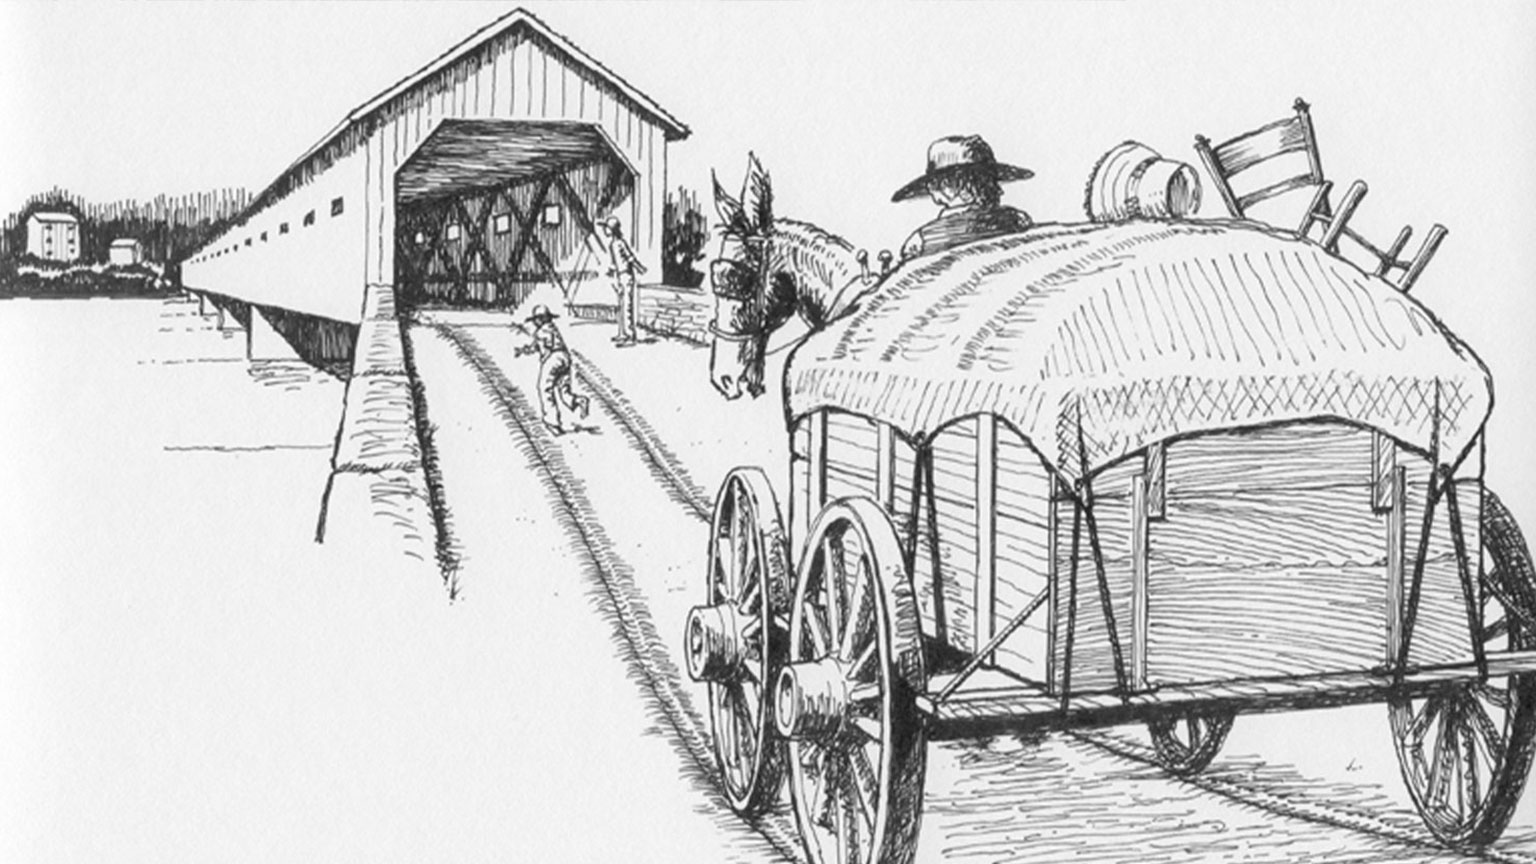 As the Gormans enter the covered bridge at Freemansburg they are ending one chapter of their life and starting the next.